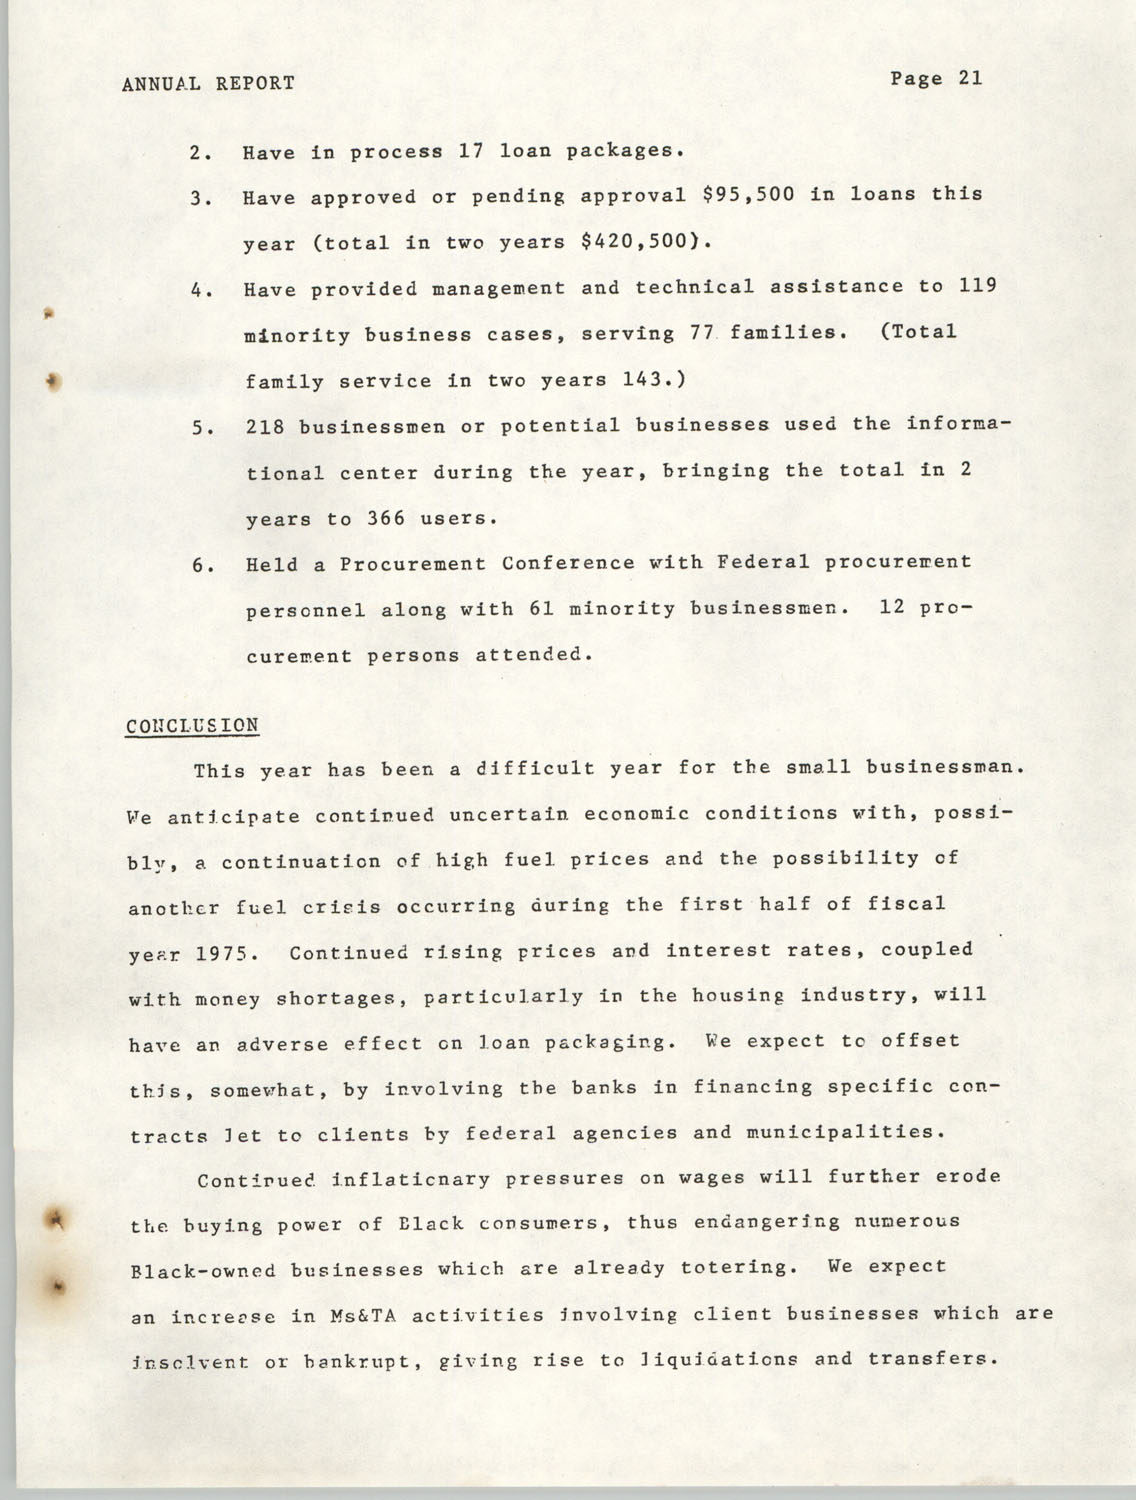 Annual Report, Penn Community Services, 1974, Page 21